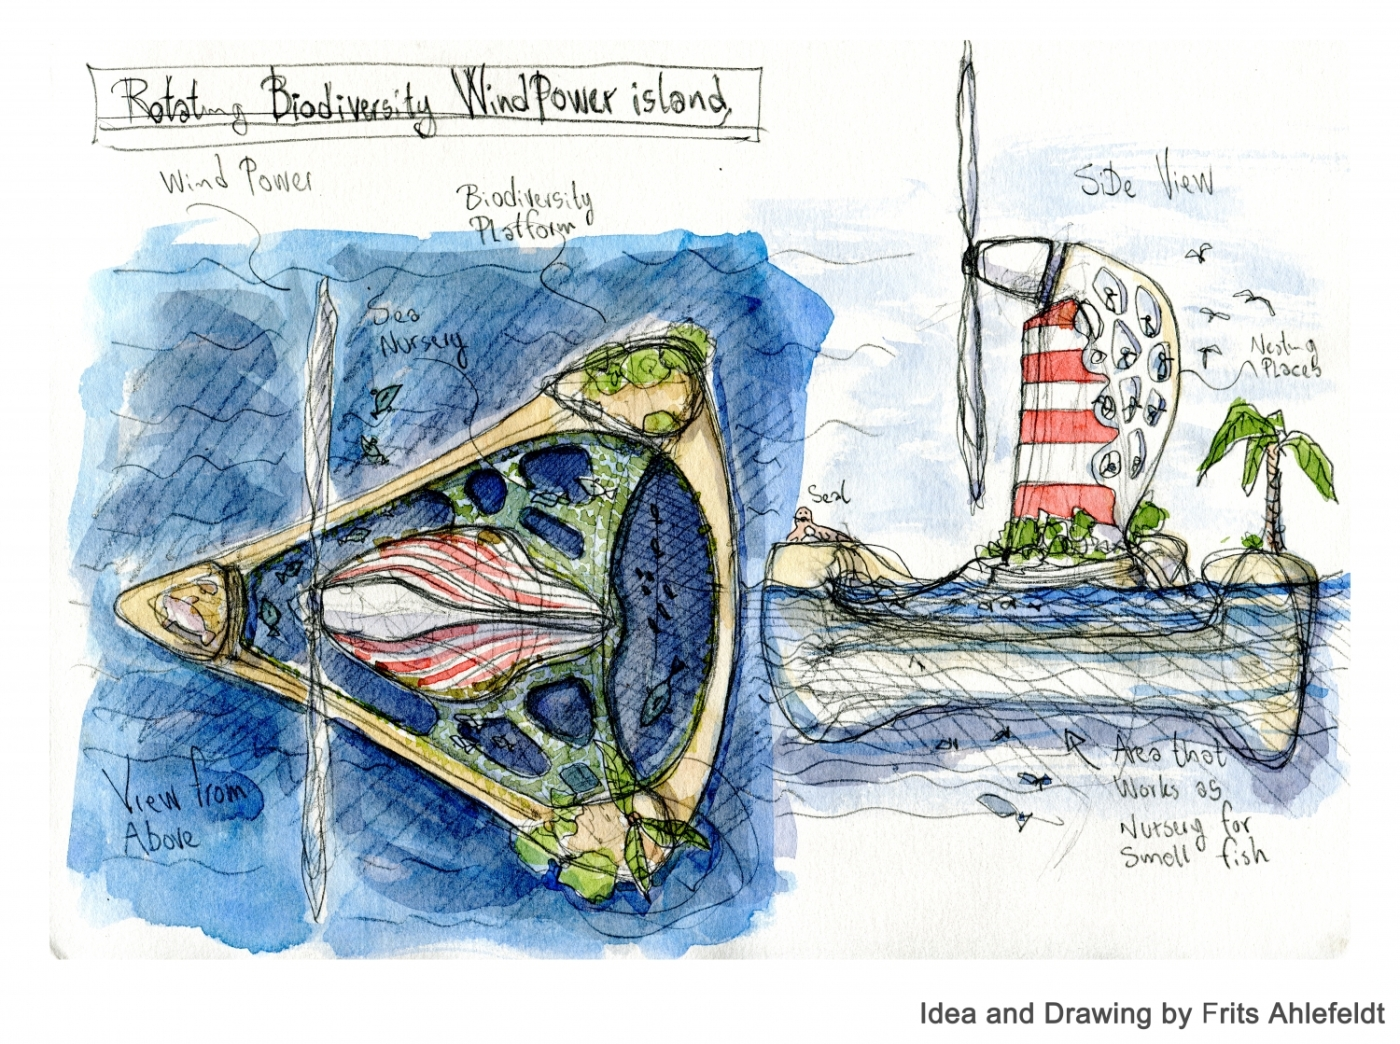 Sketch for a lagoon shaped off-shore wind turbine maximizing biodiversity